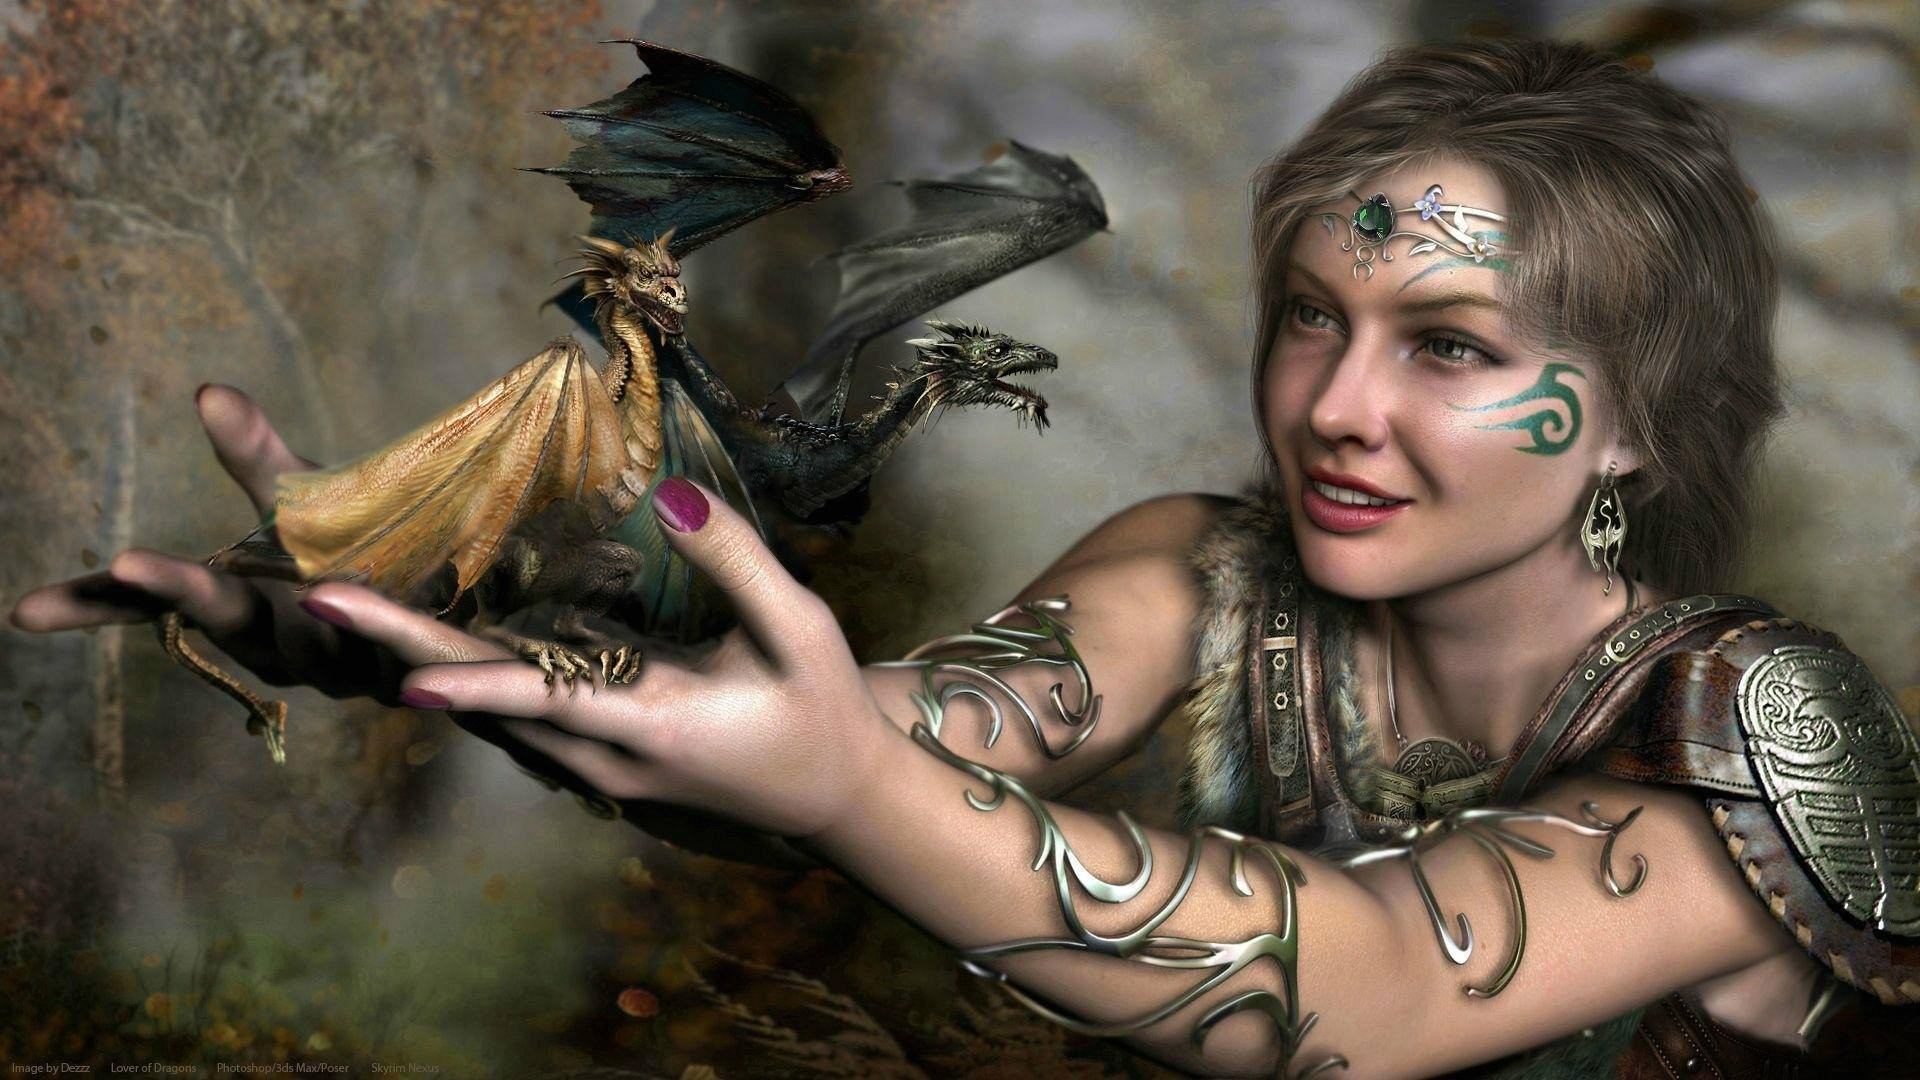 Fantasy Girl With Dragon Tattoos HD Wallpaper. Search more high